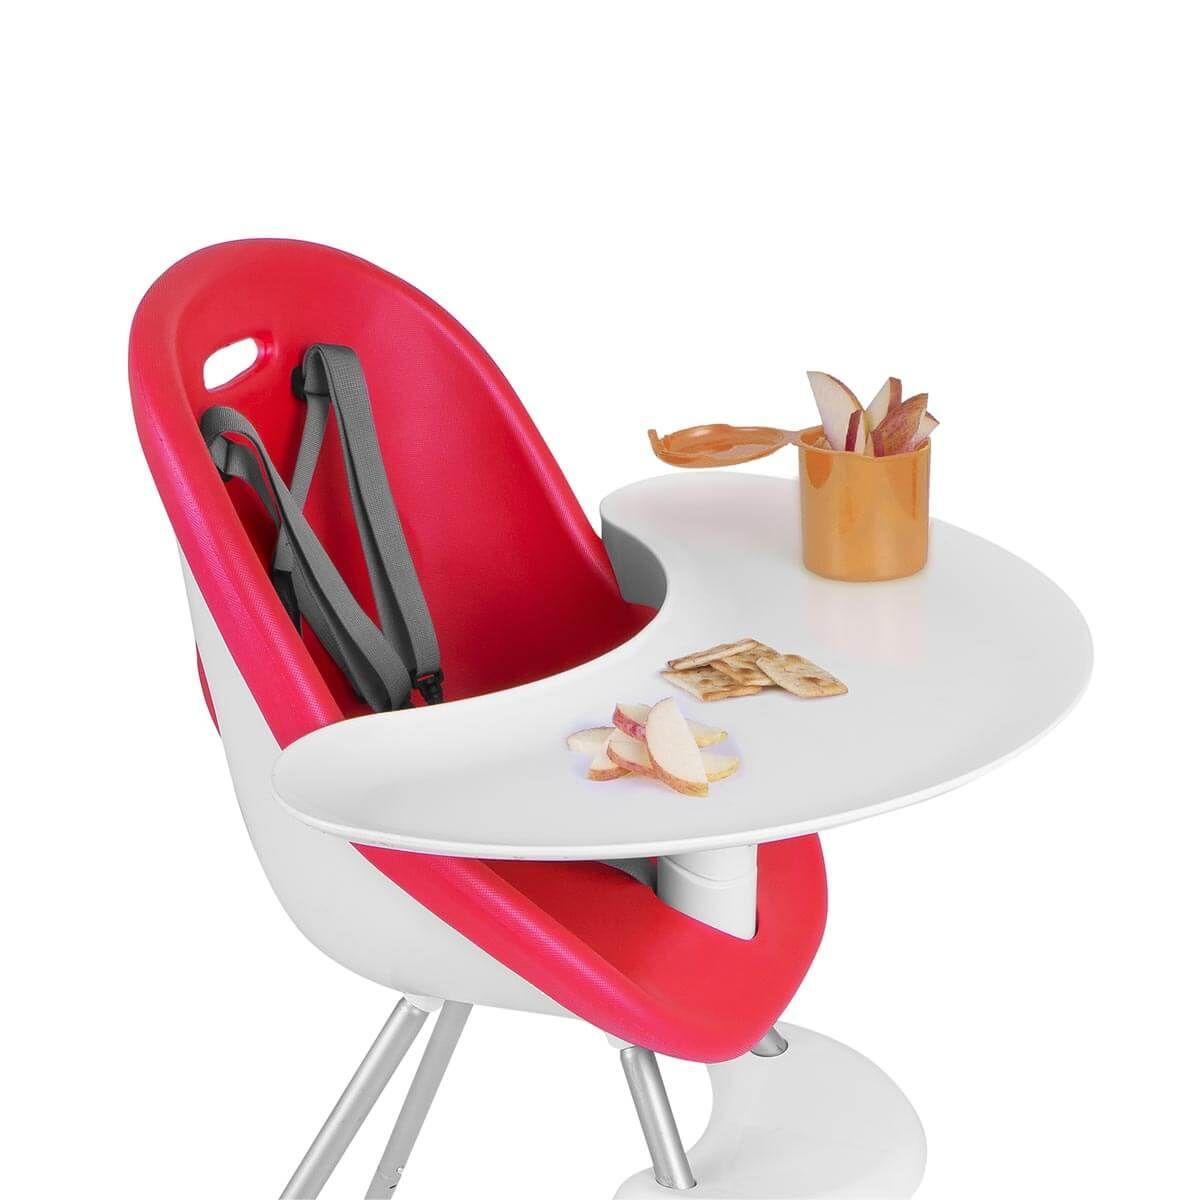 Phil Teds Poppy Baby High Chair With Food Tray In Cranberry